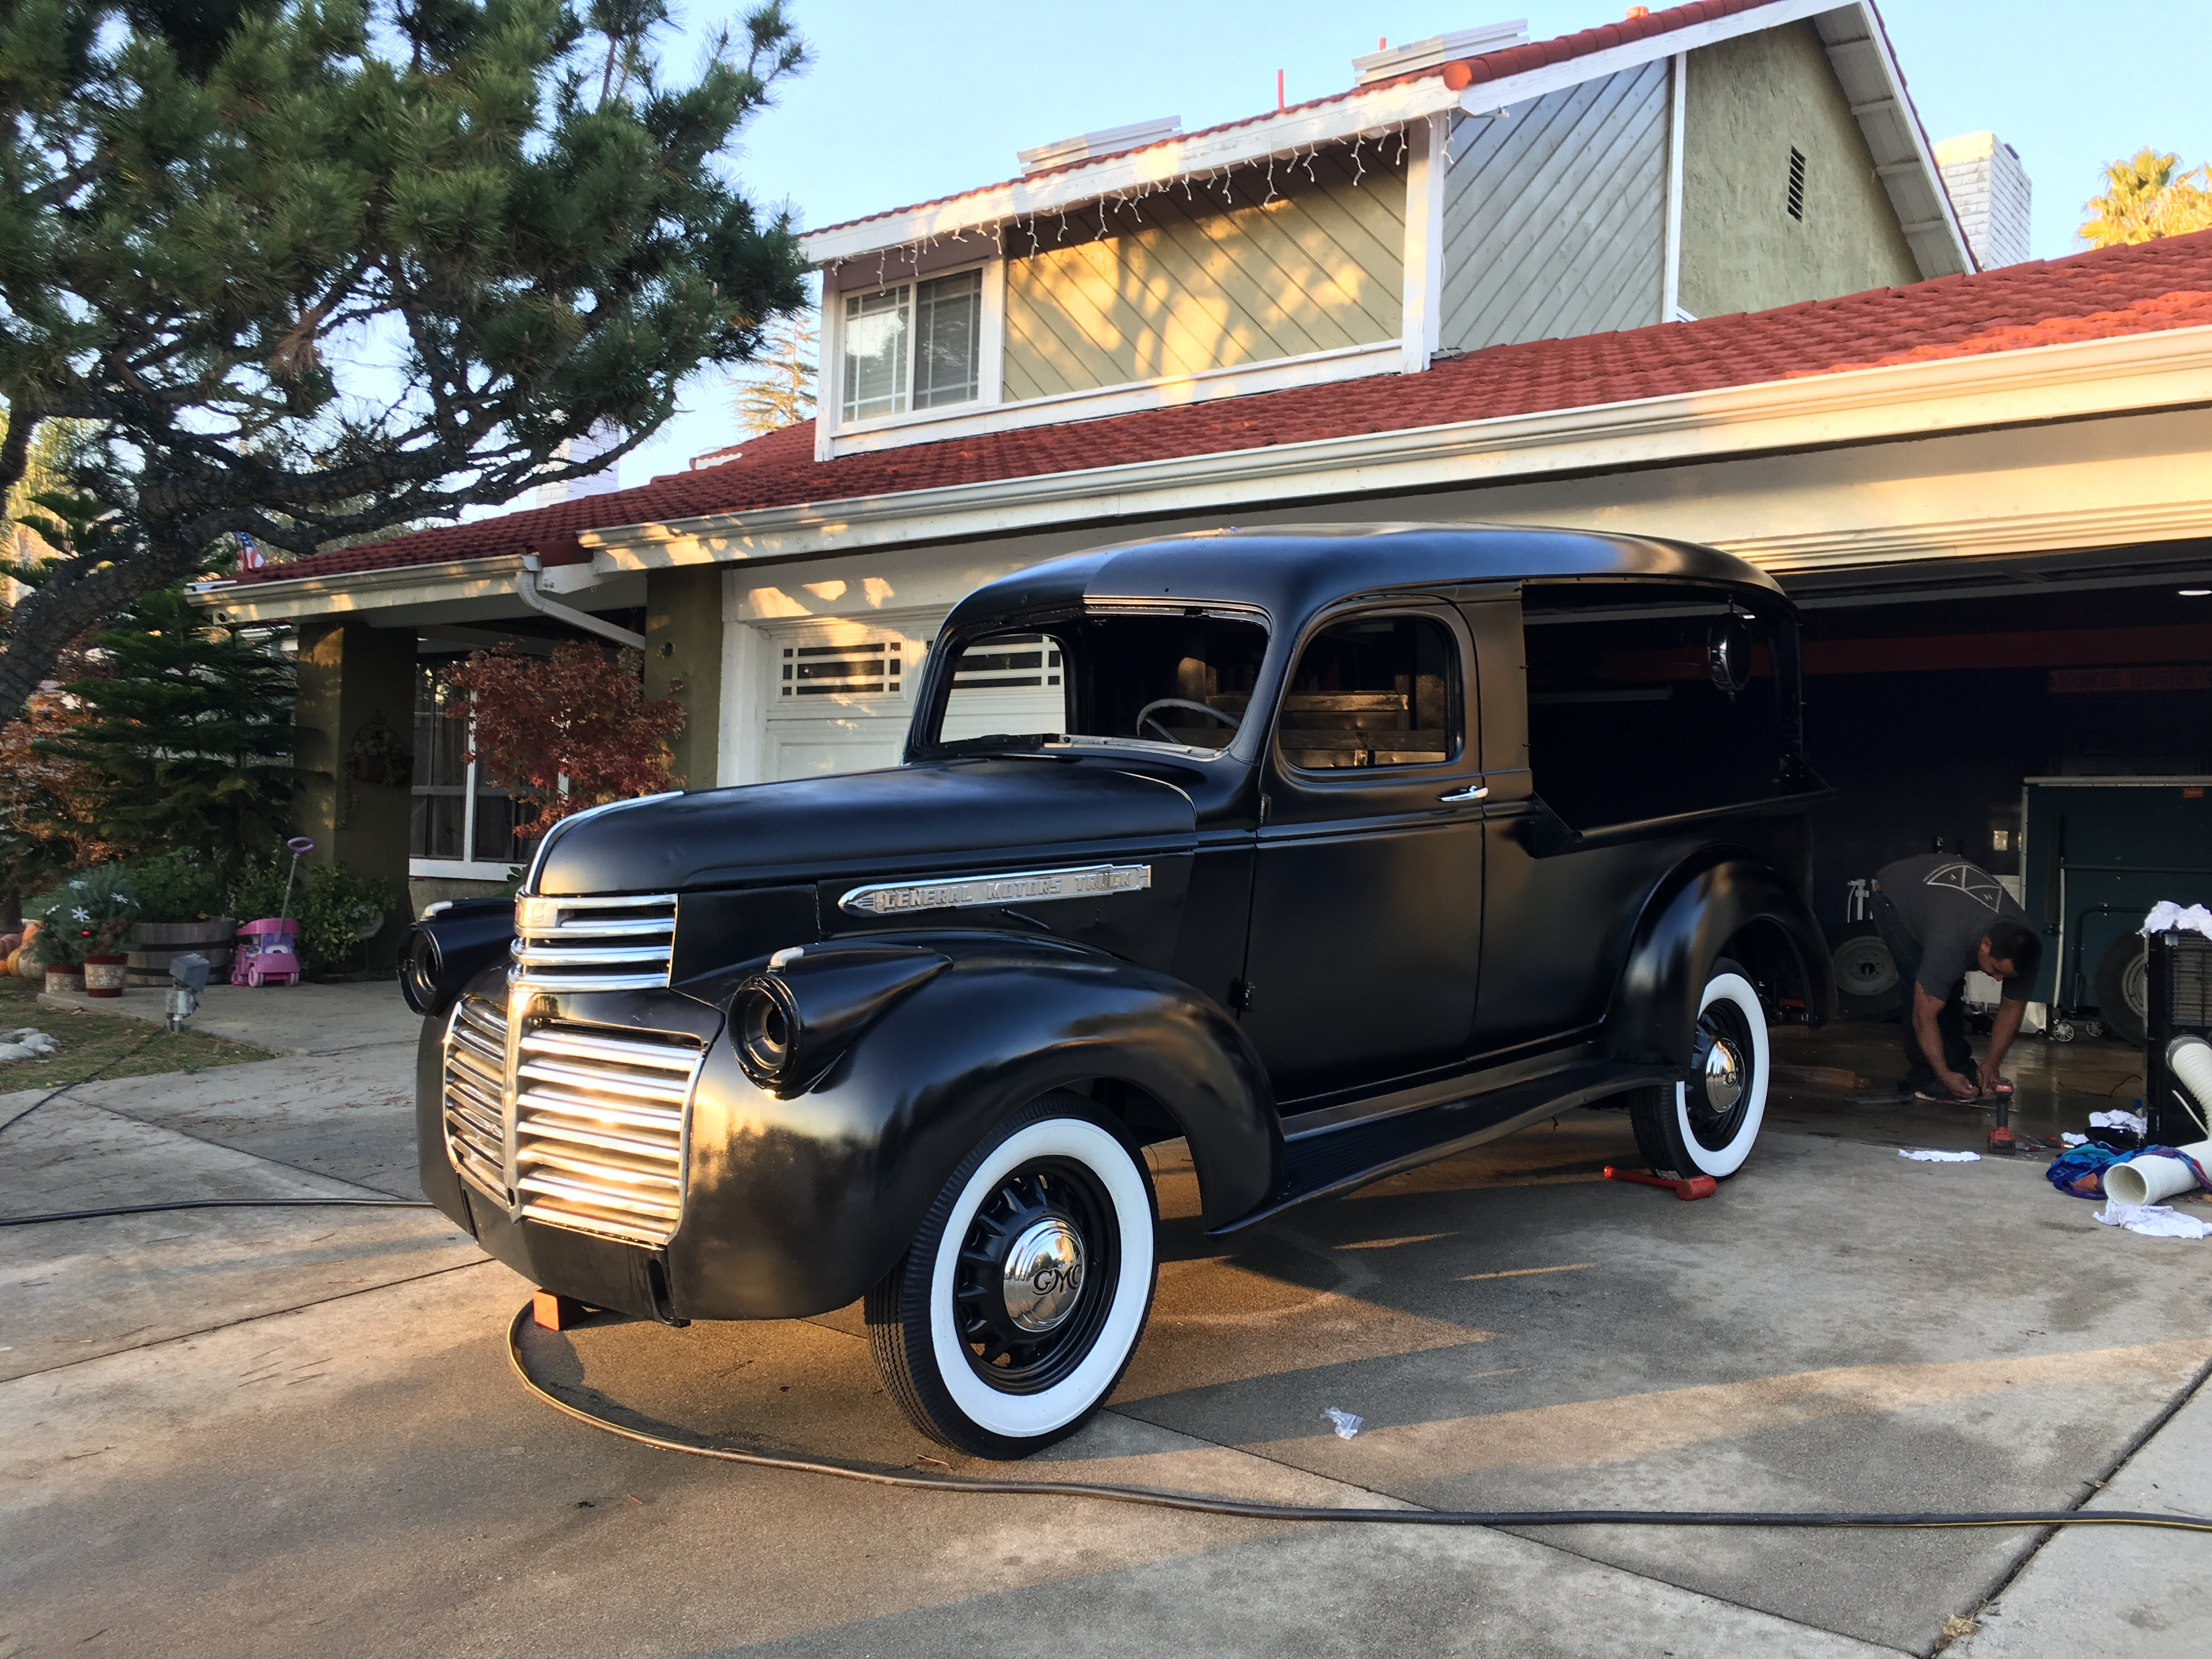 1946 Gmc Canopy Express 1 2 Cars For Sale Antique Automobile Old Car Wiring Harnesses All Metal Work Has Been Done On It Bodywork Prime Satin Black Reupholster Seats Rebuild 280 Motor New Harness Wheels Tires